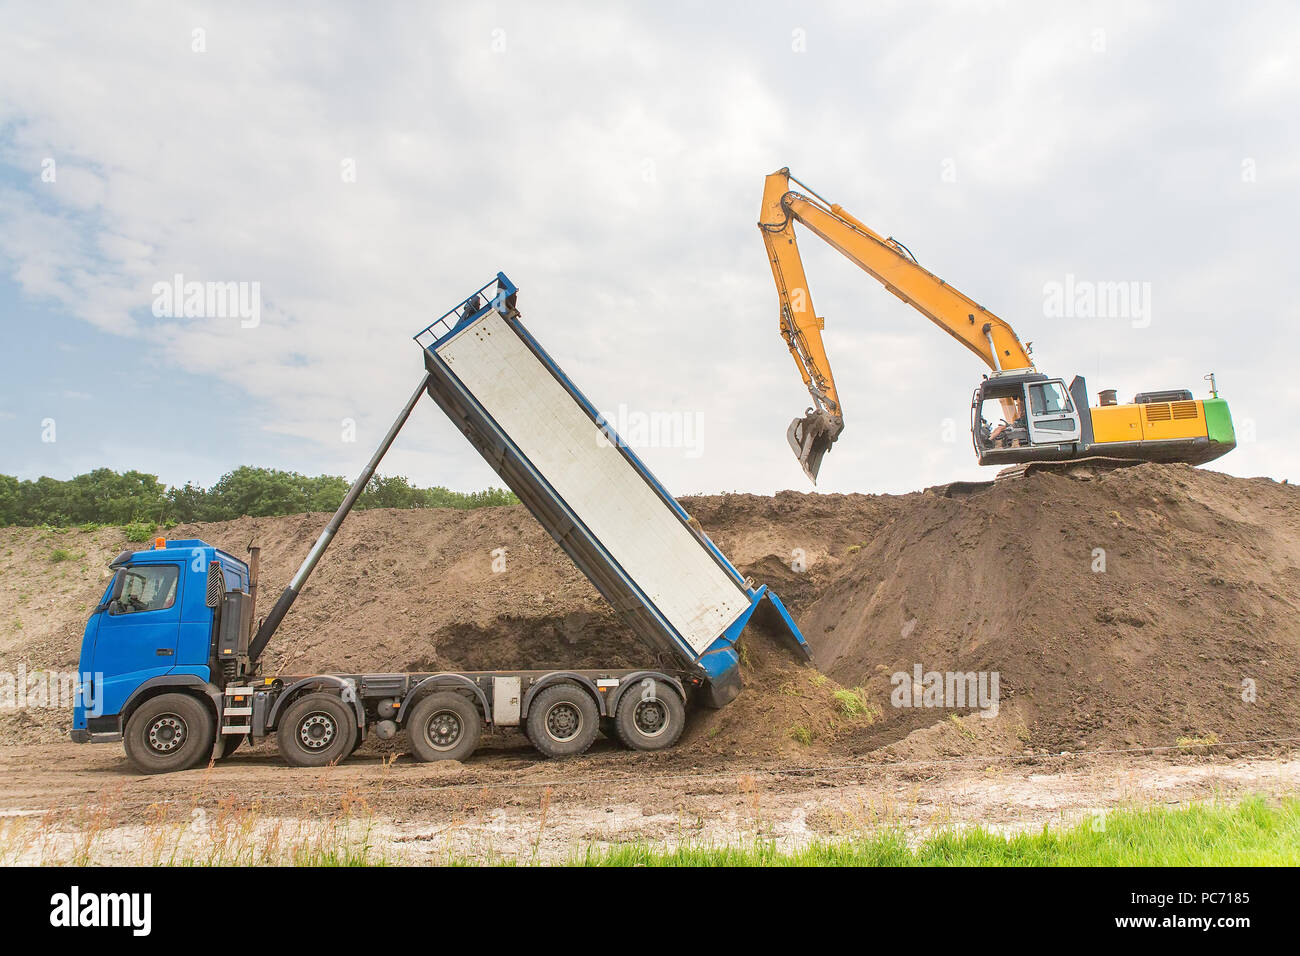 Truck and excavator together build a sound barrier of sand - Stock Image